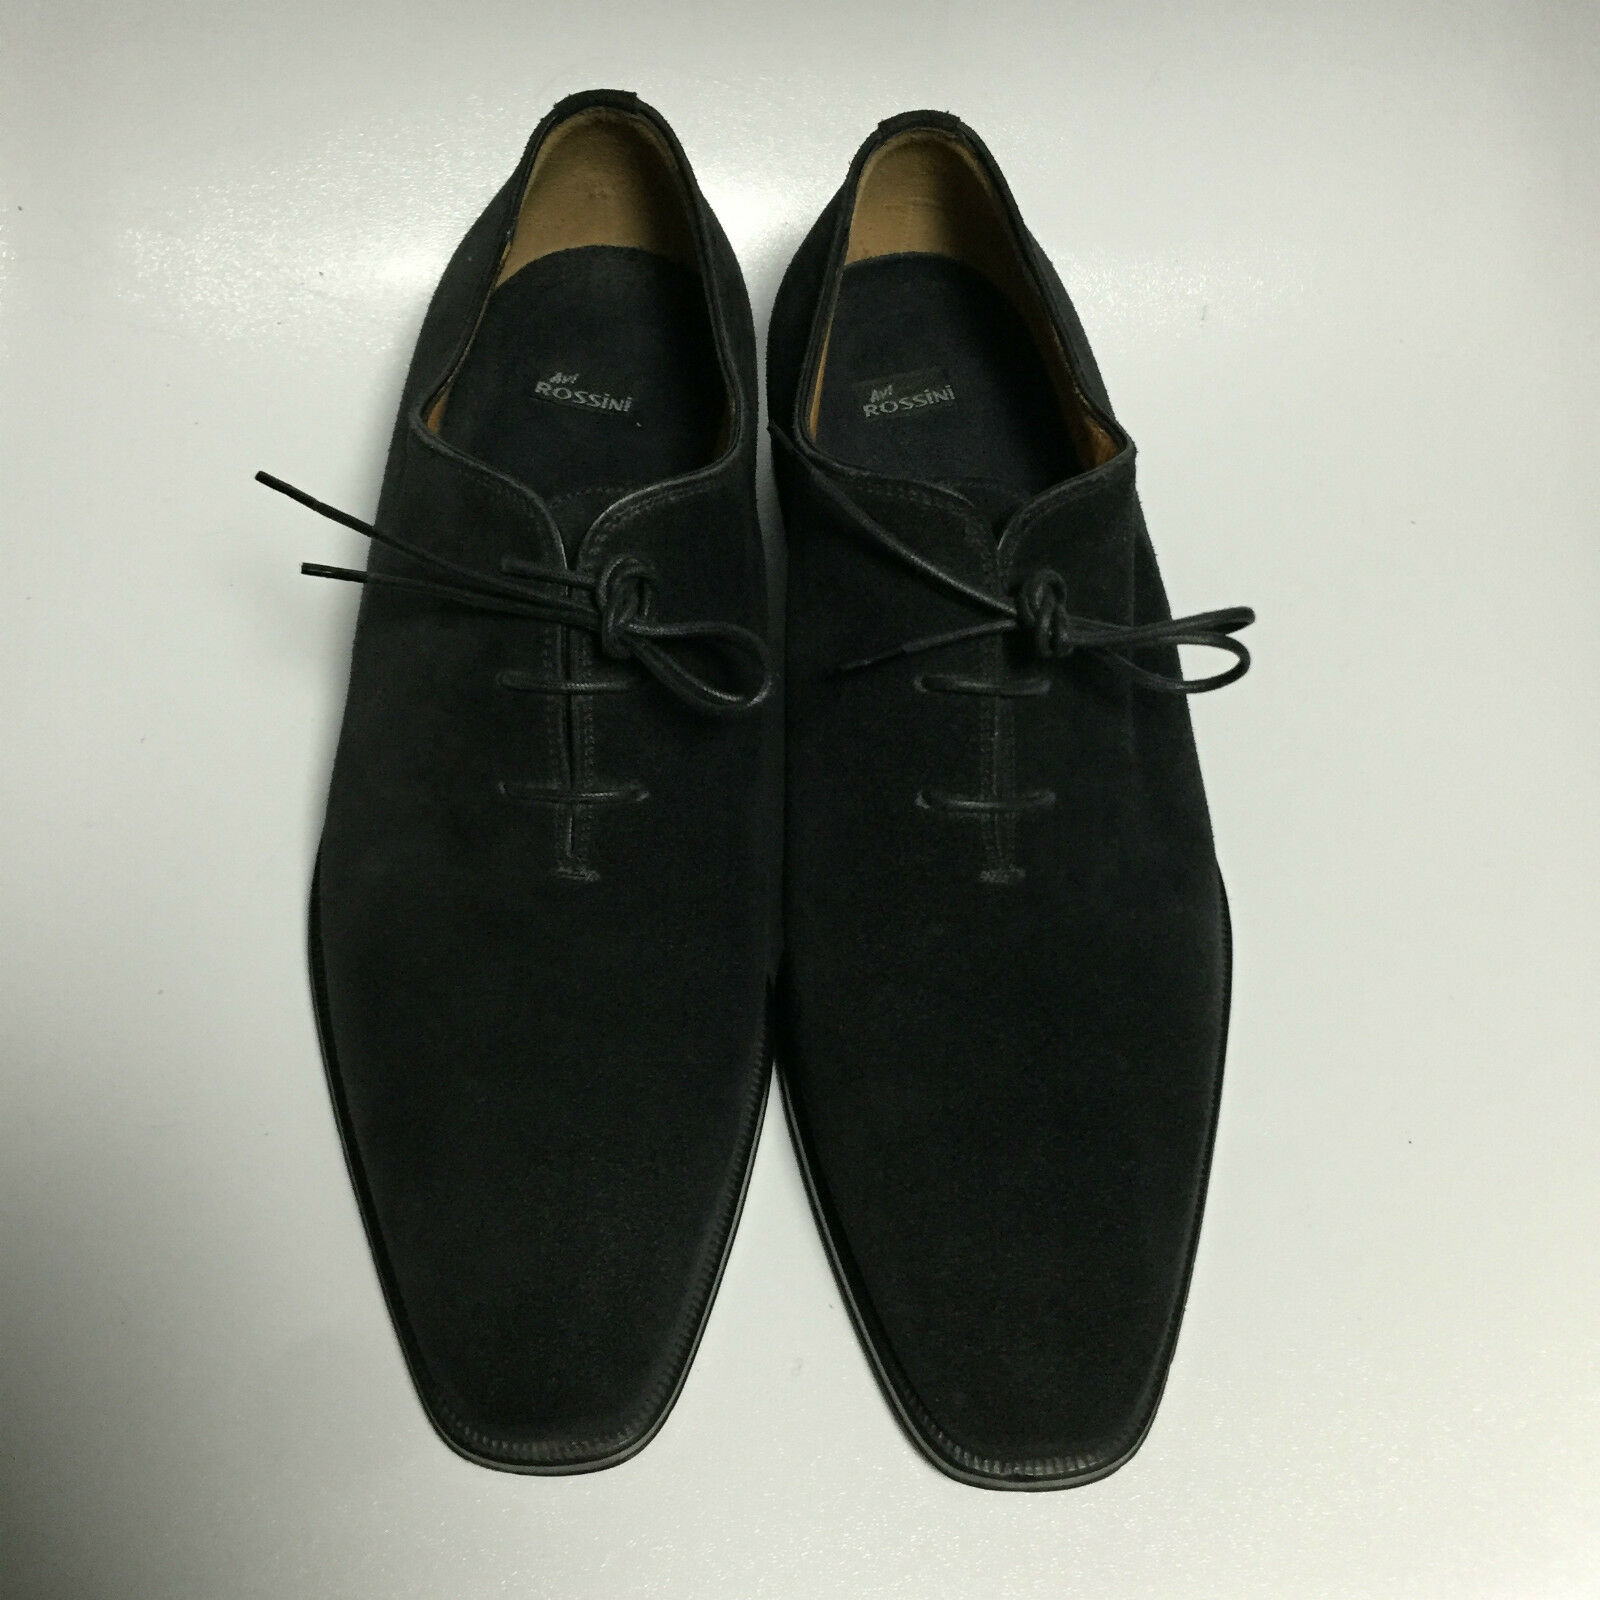 Avi Rossini Navy Suede Wholecut Wholecut Suede Oxford UK9 8bbf49